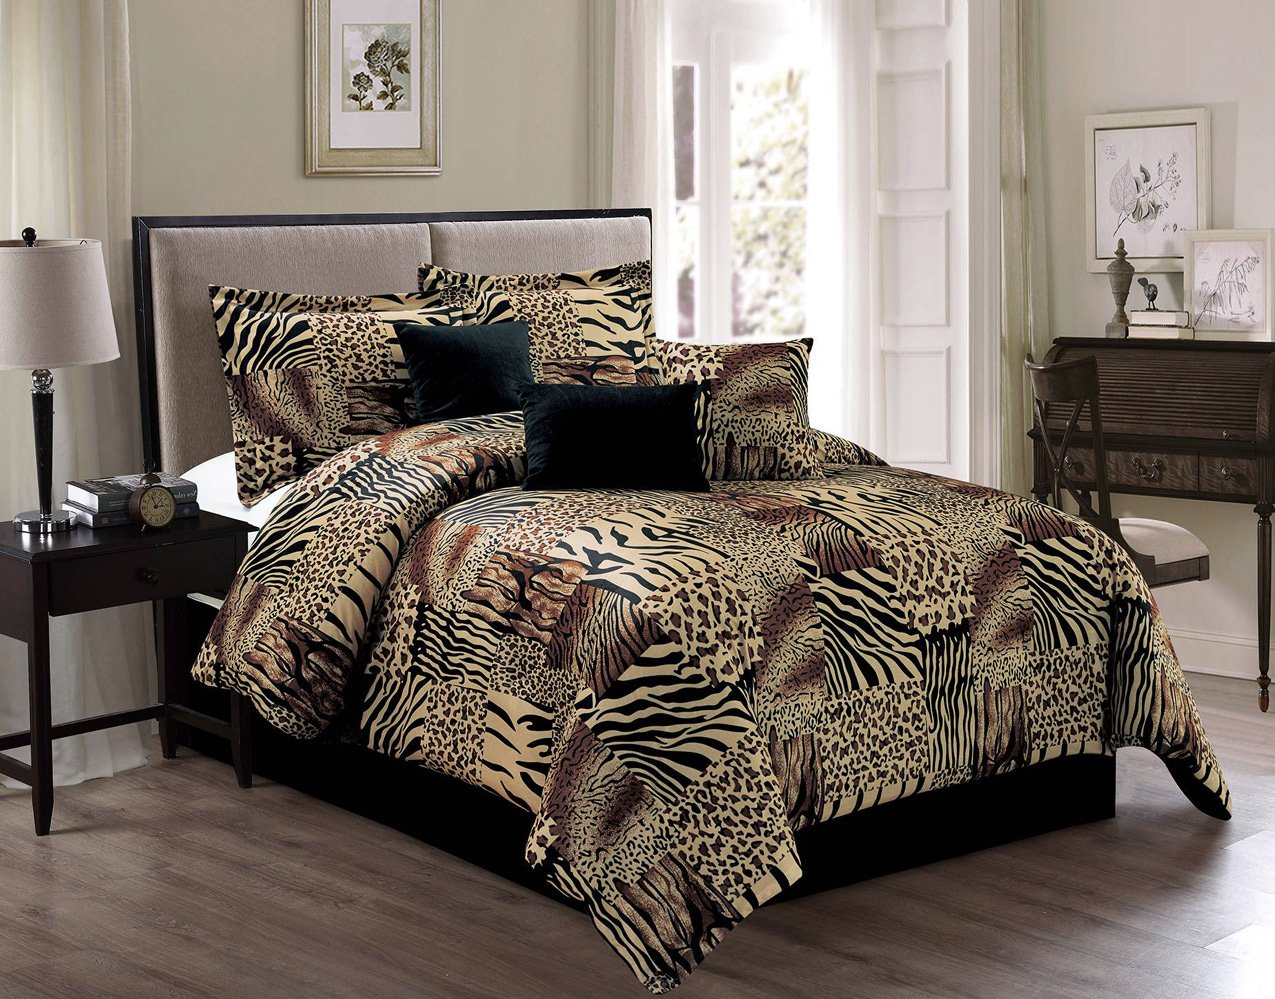 7 Piece KING Safari Micro Fur Comforter set - Zebra, Giraffe, Leopard, Tiger Etc - Multi Animal Print Bed in a Bag Brown Beige Black White Bedding